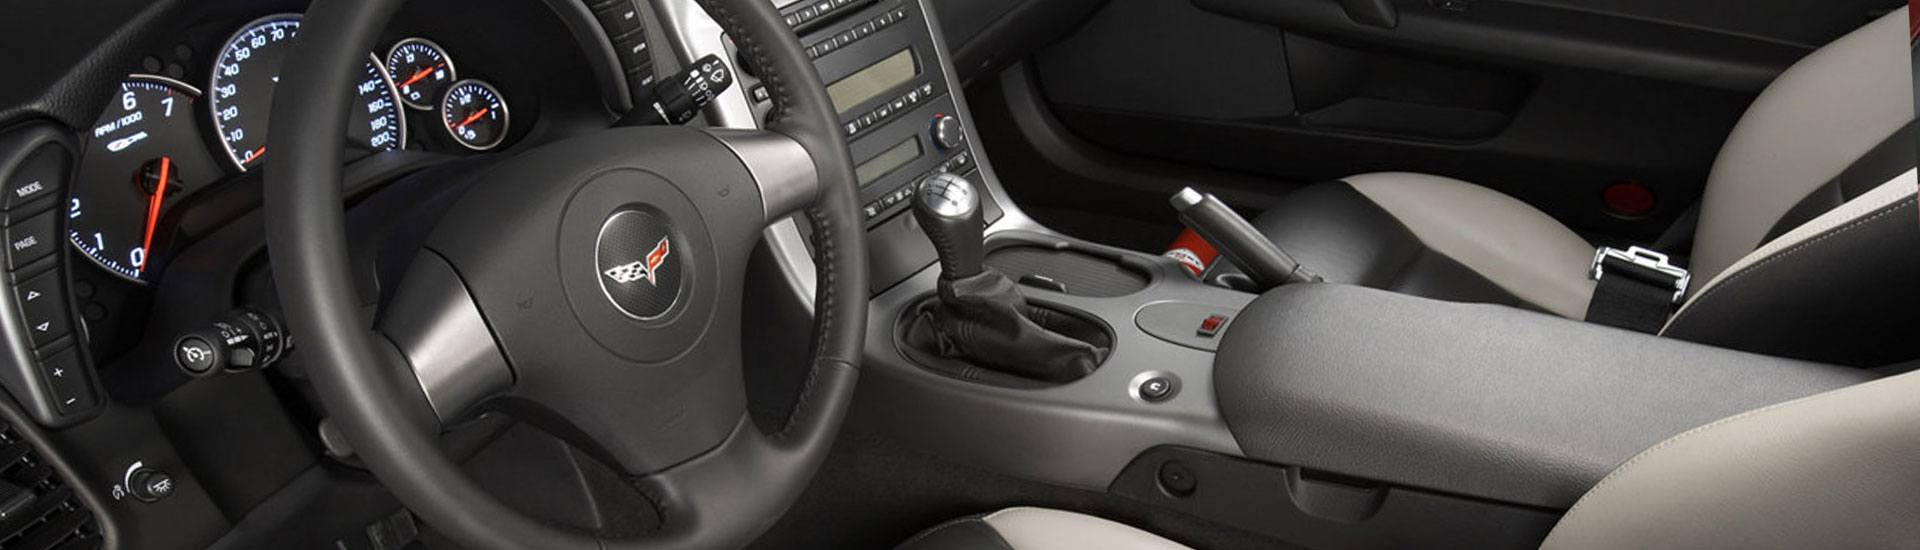 2006 Chevrolet Corvette Dash Kits